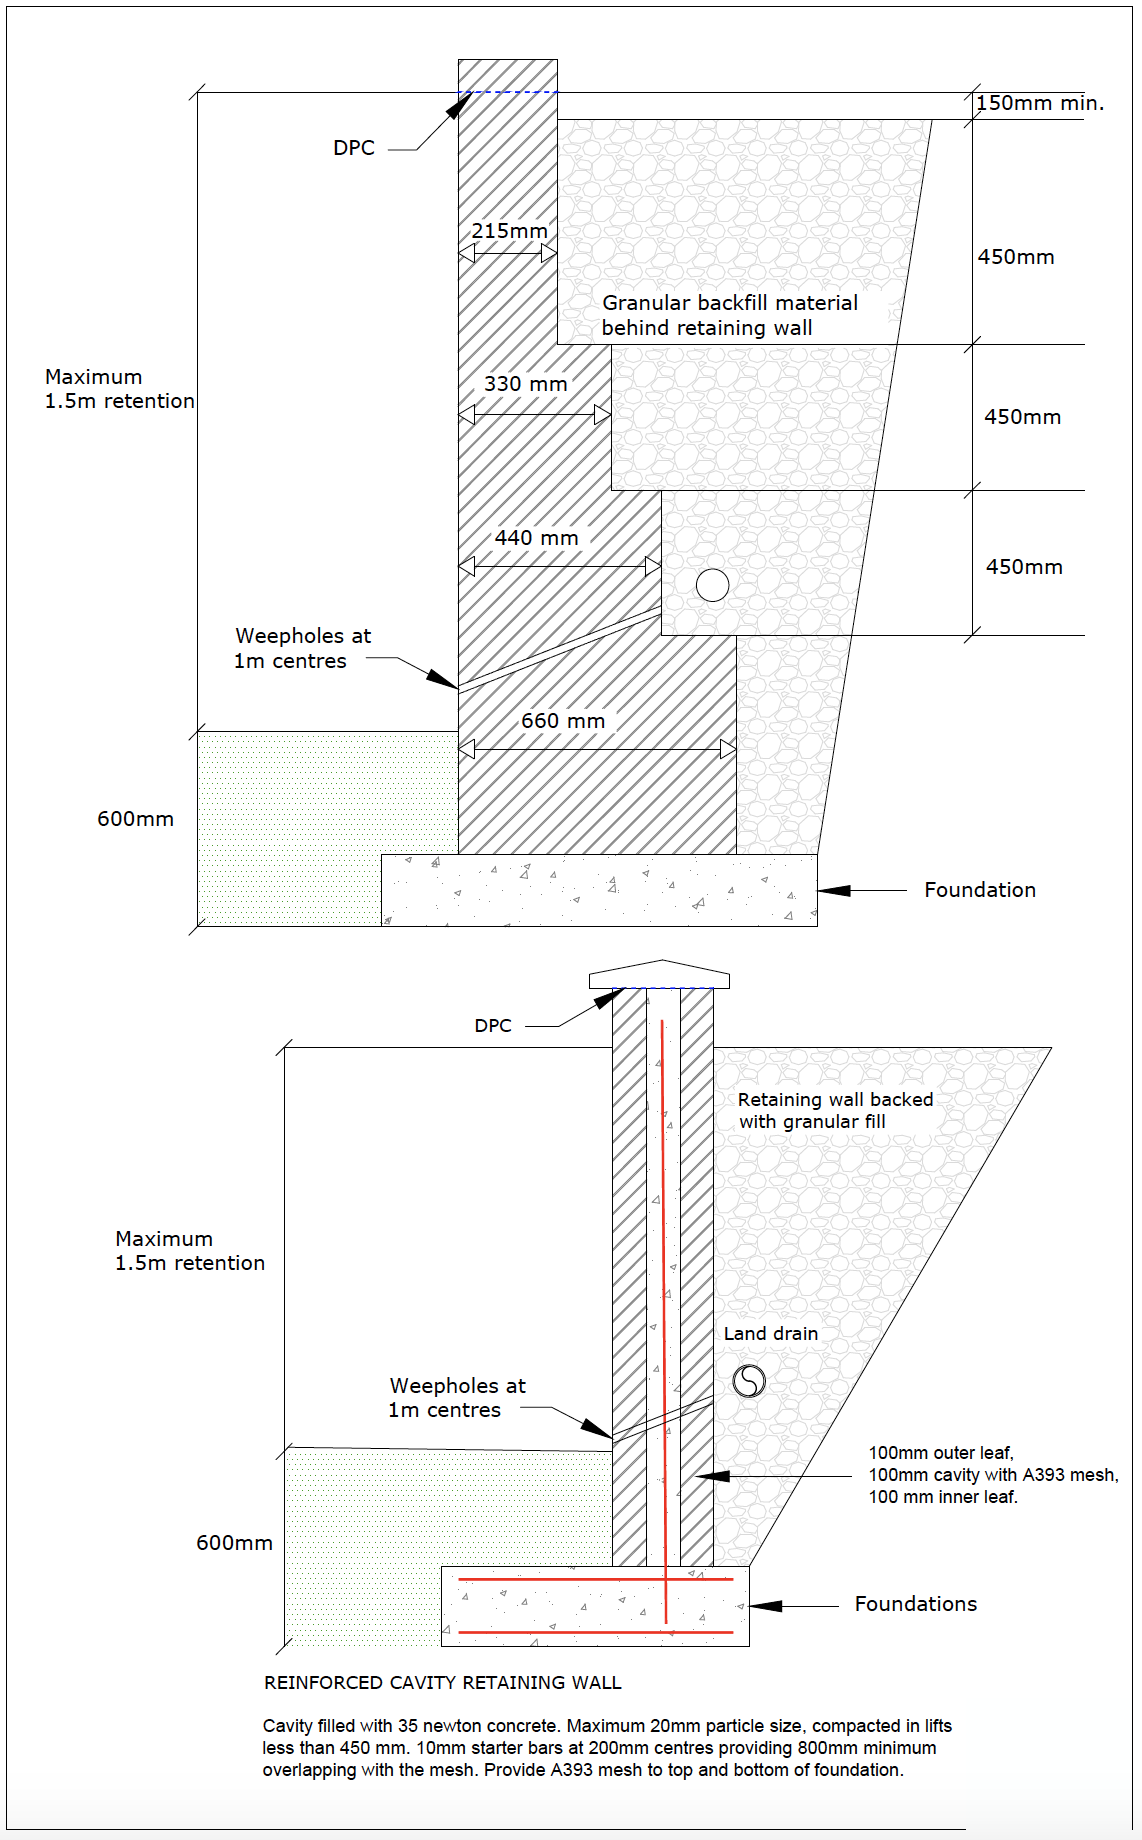 Diagram A12: Typical blockwork retaining wall details